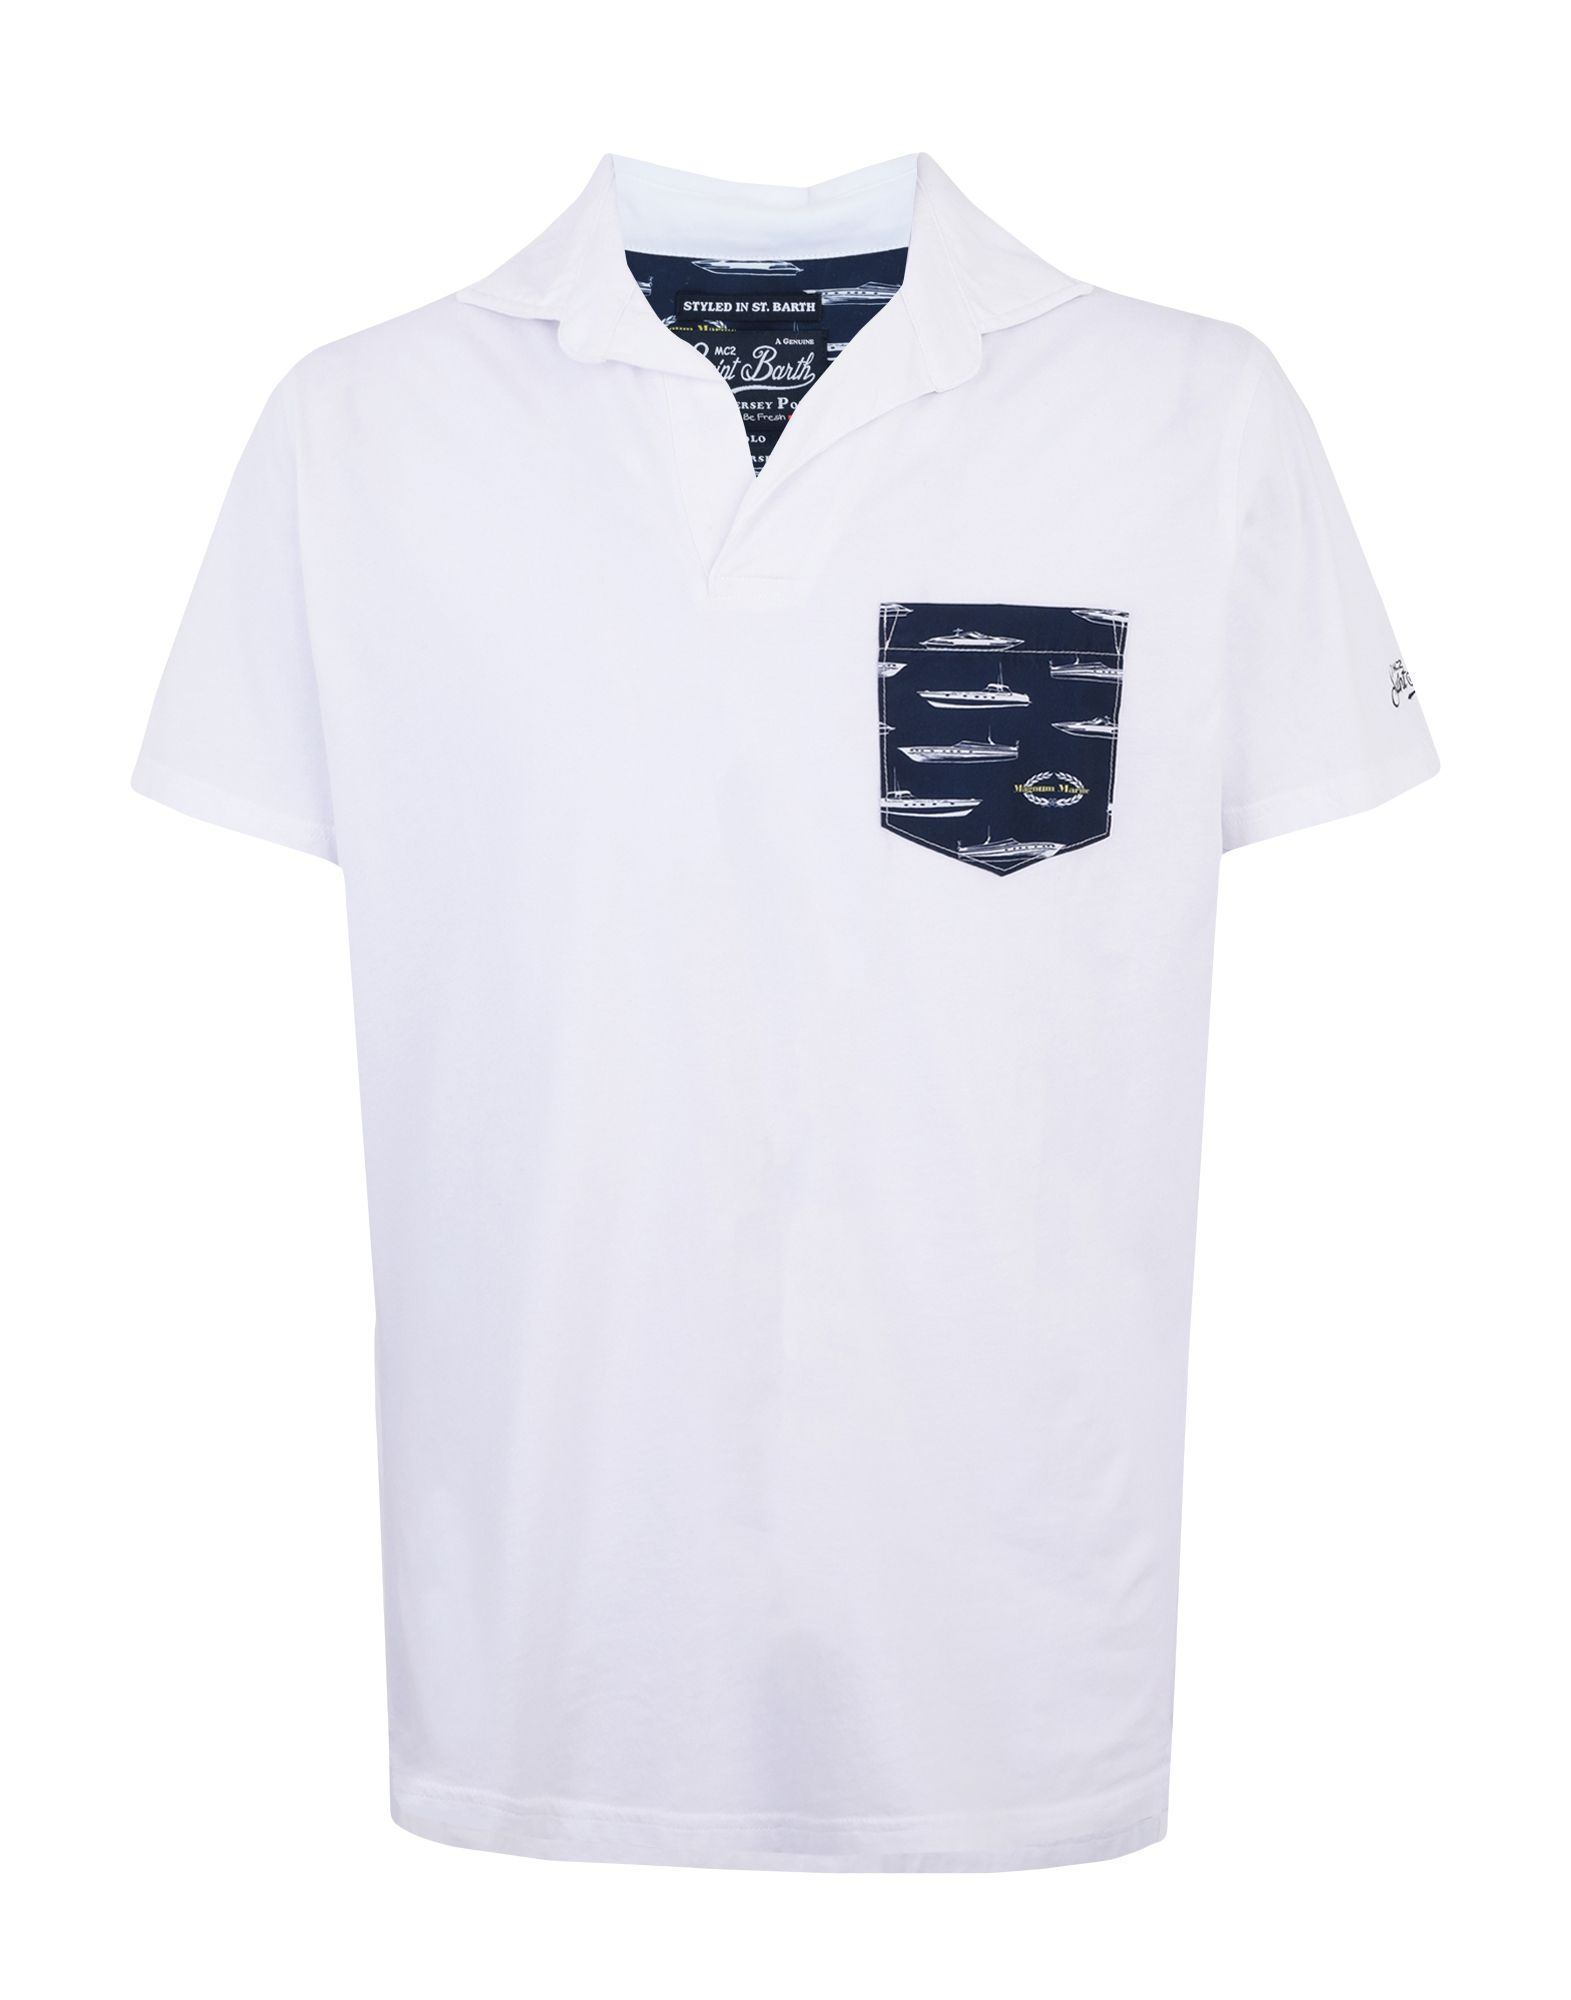 MC2 SAINT BARTH Polo shirts. jersey, logo, embroidered detailing, solid color, polo collar, short sleeves, single pocket. 100% Cotton